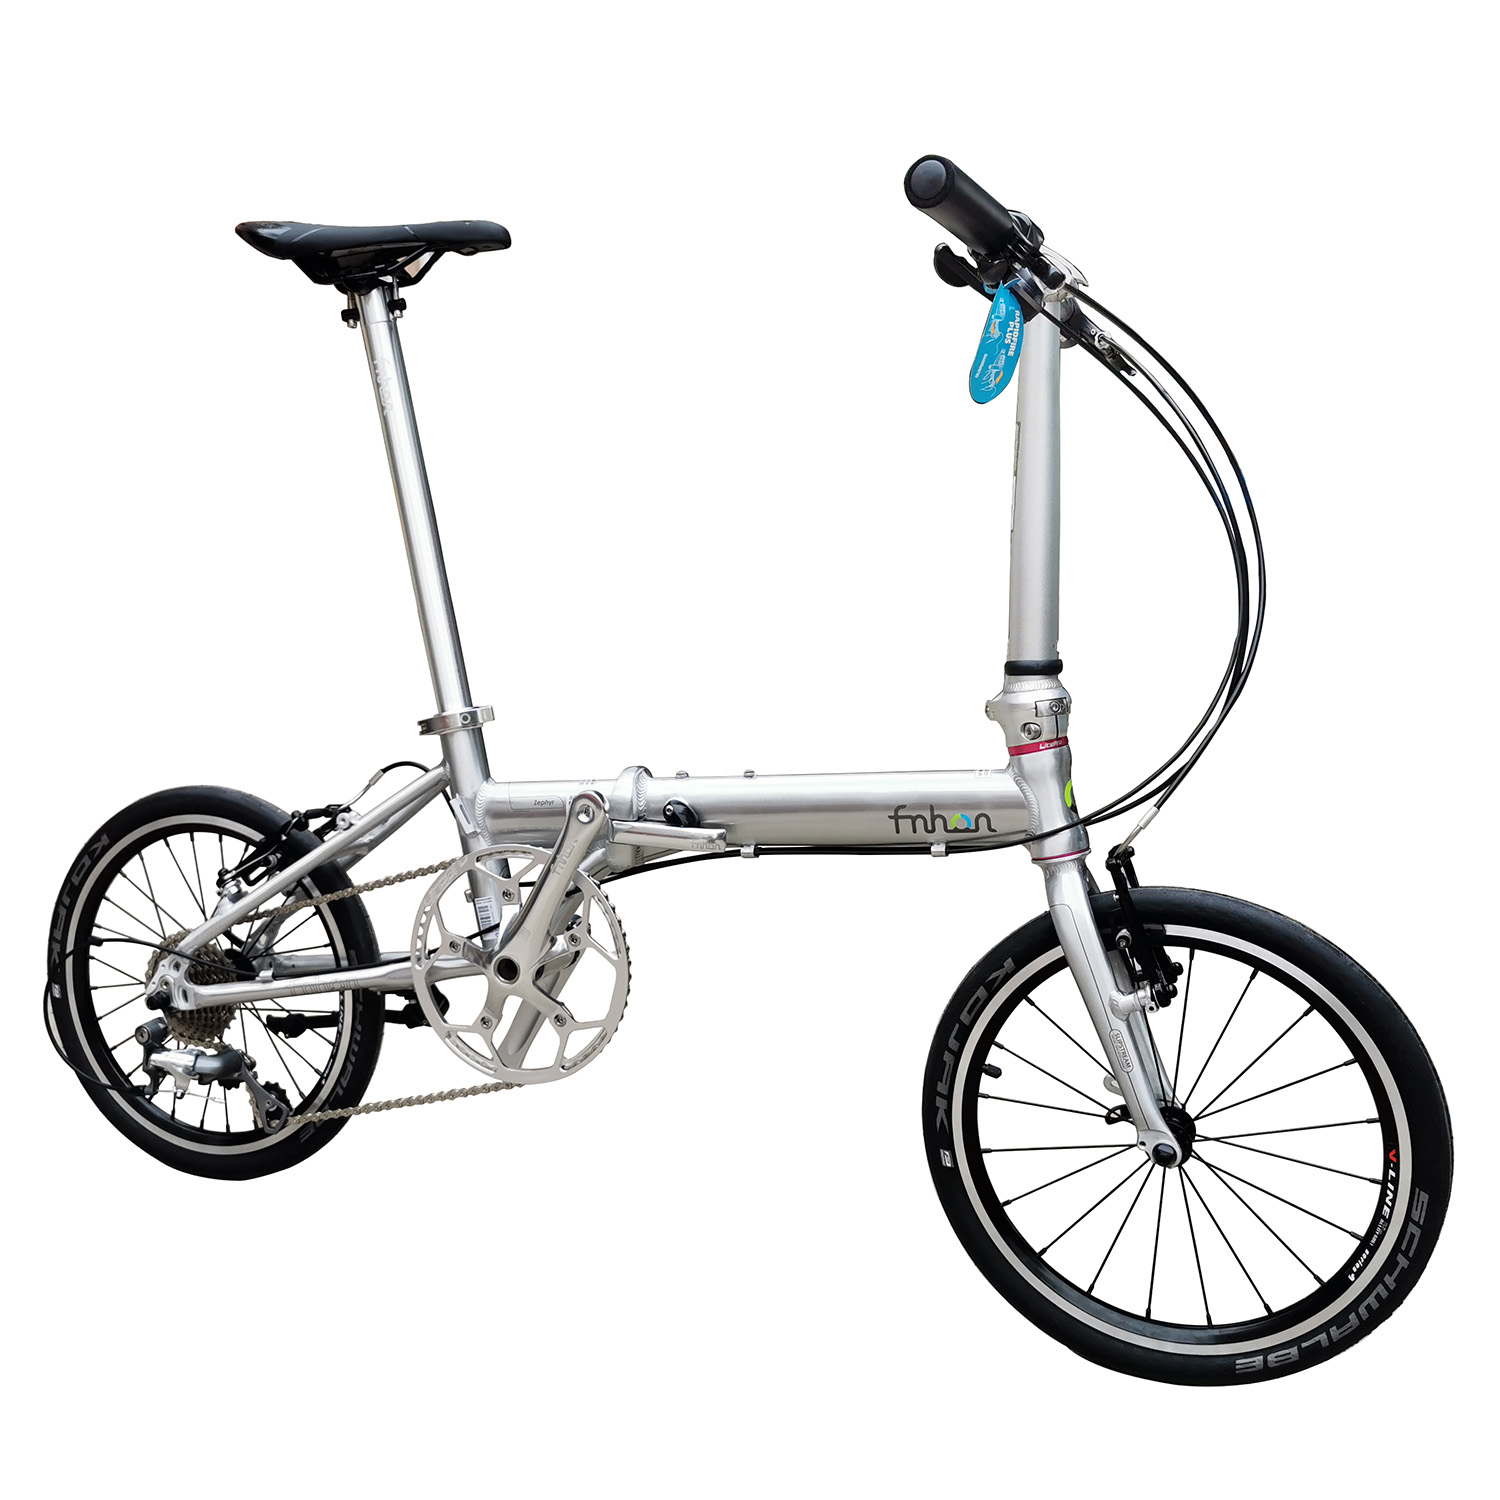 Fnhon Zephyr 16 Aluminium Folding Bike 16 349 Minivelo Urban Commuter Bicycle with V Brake 9 Speed Mini velo Bikes image